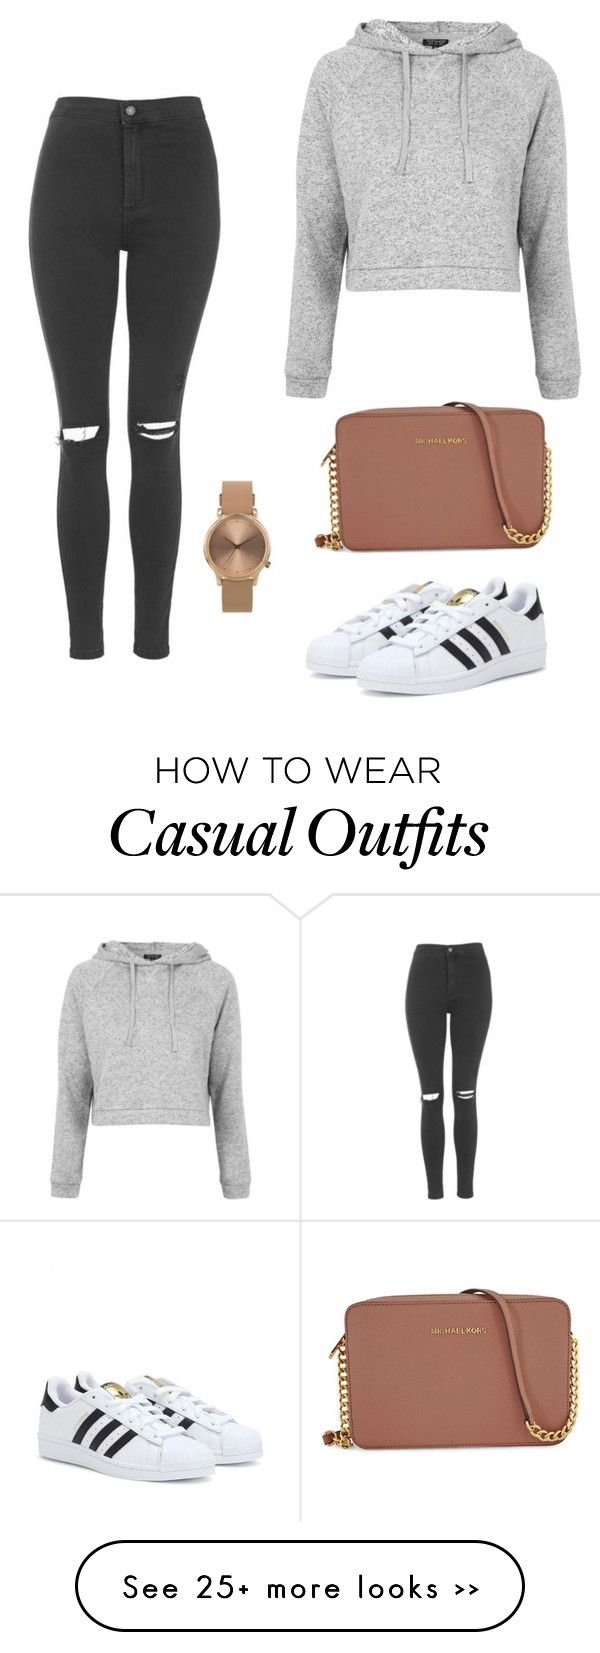 """Casual outting"" by nelly-niblett on Polyvore featuring Topshop, adidas and Michael Kors"